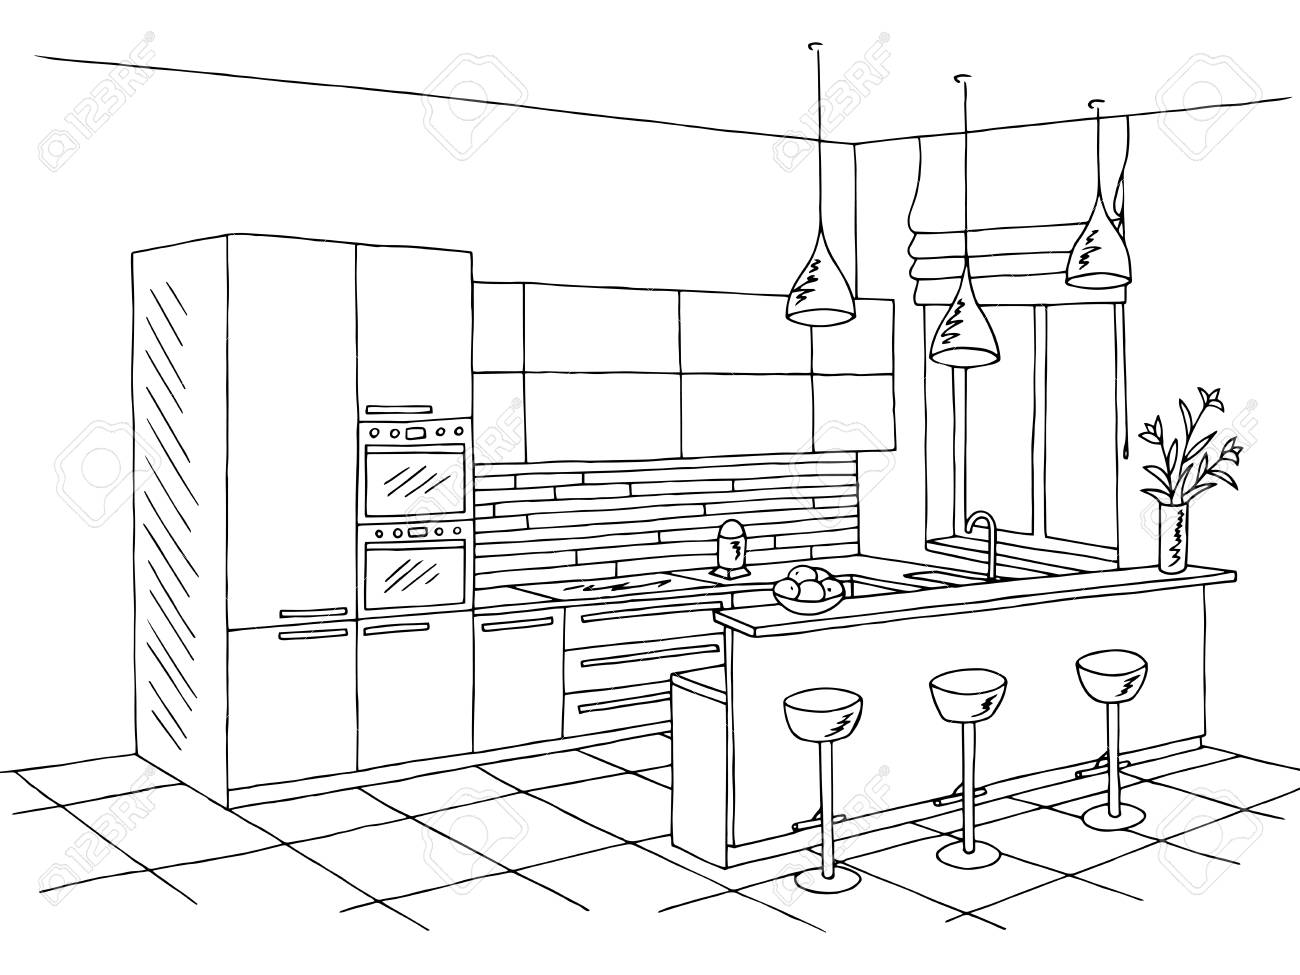 Kitchen room interior black white graphic art sketch illustration.